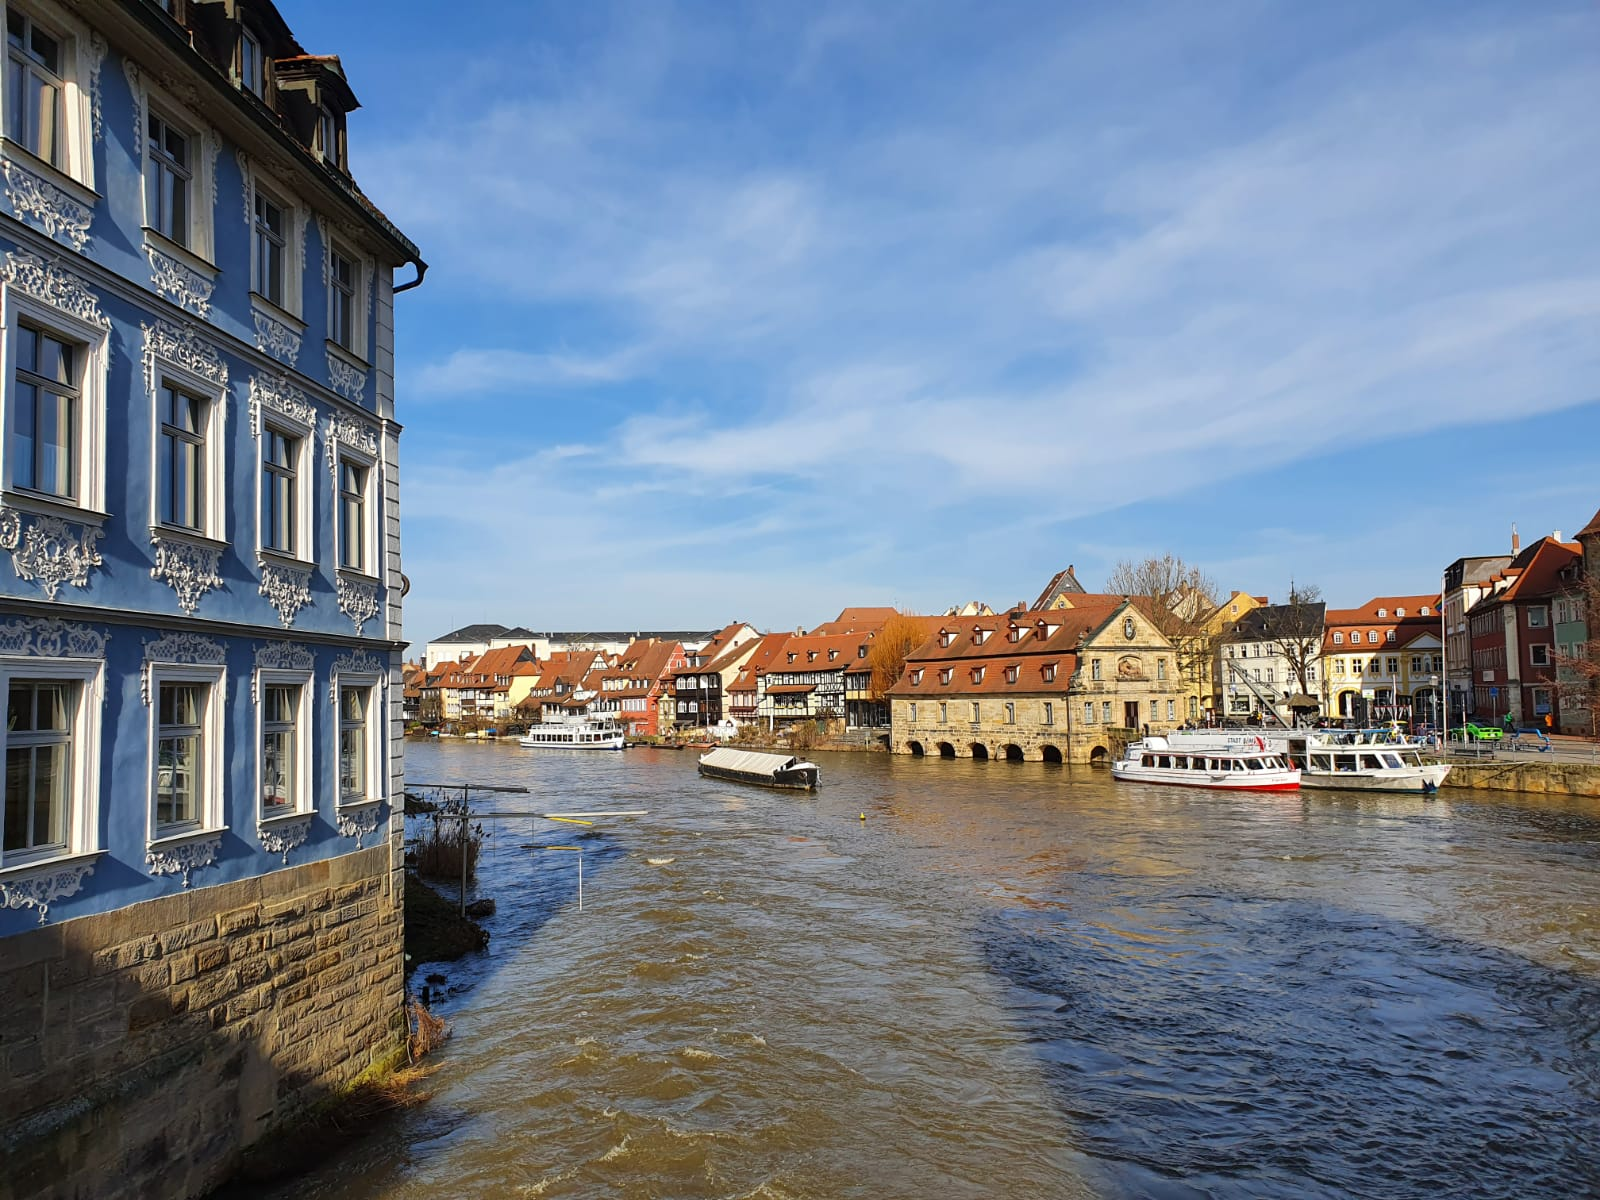 Image of Little Venice in Bamberg